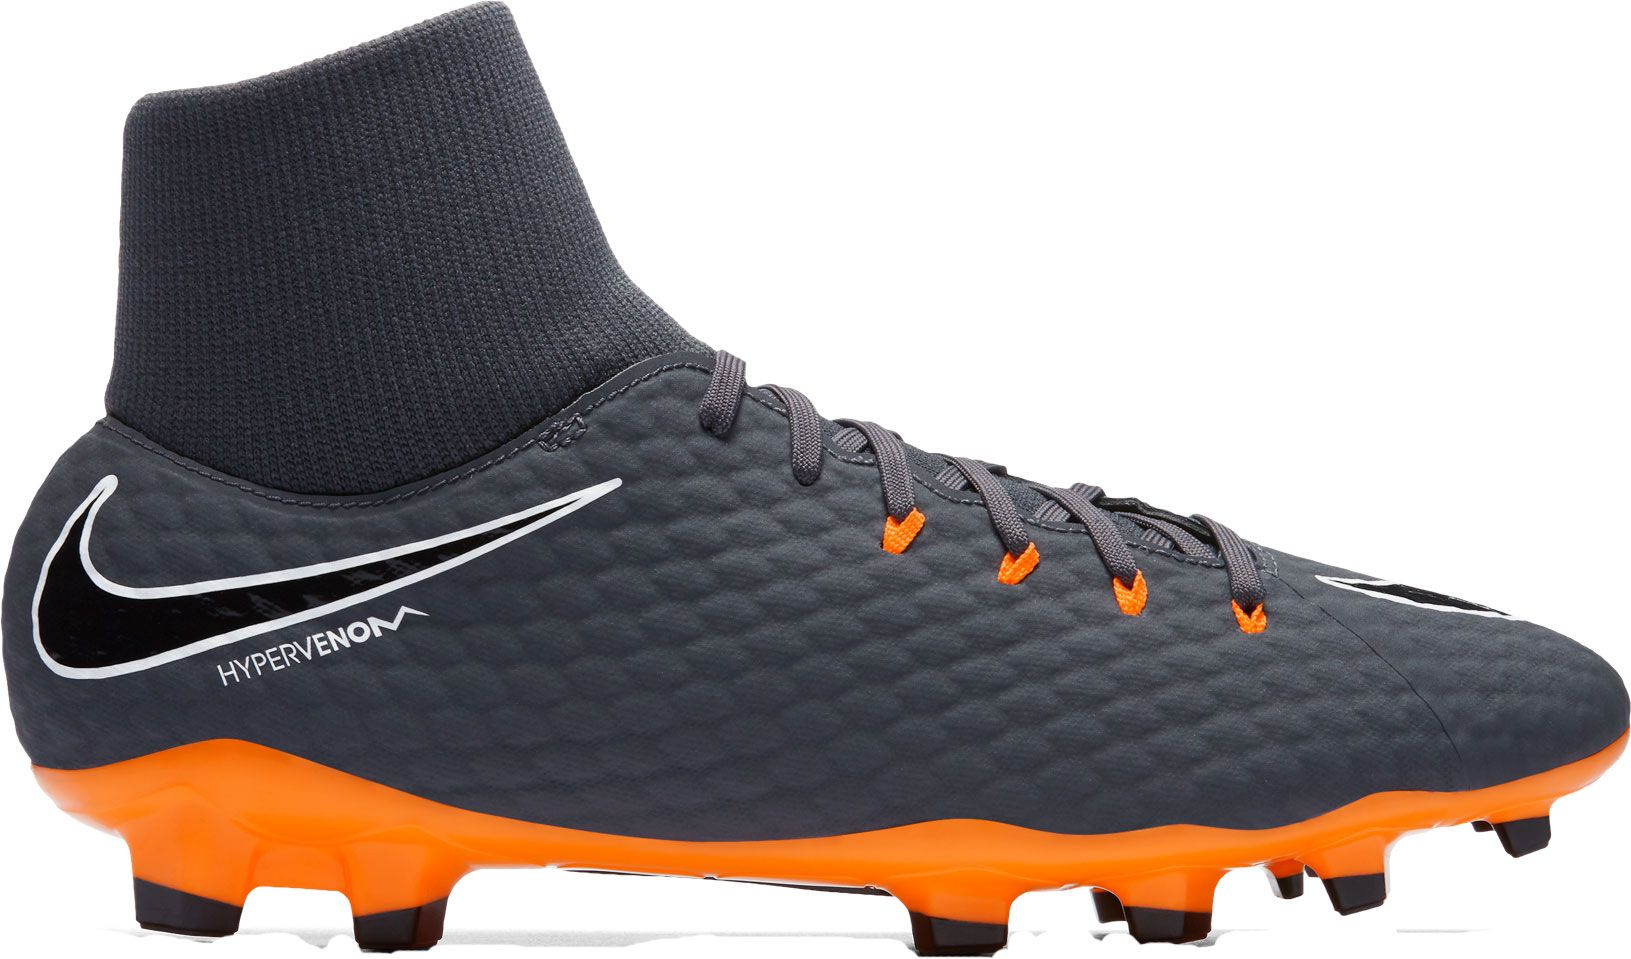 Nike® Soccer Cleats. Nike® soccer cleats are engineered to enhance your game. Dominate the pitch with the most innovative cleats in soccer. From the air-light Nike Mercurial to the undeniable quickness of the Nike Hypervenom cleat, find the fit and construction that's right for your game.